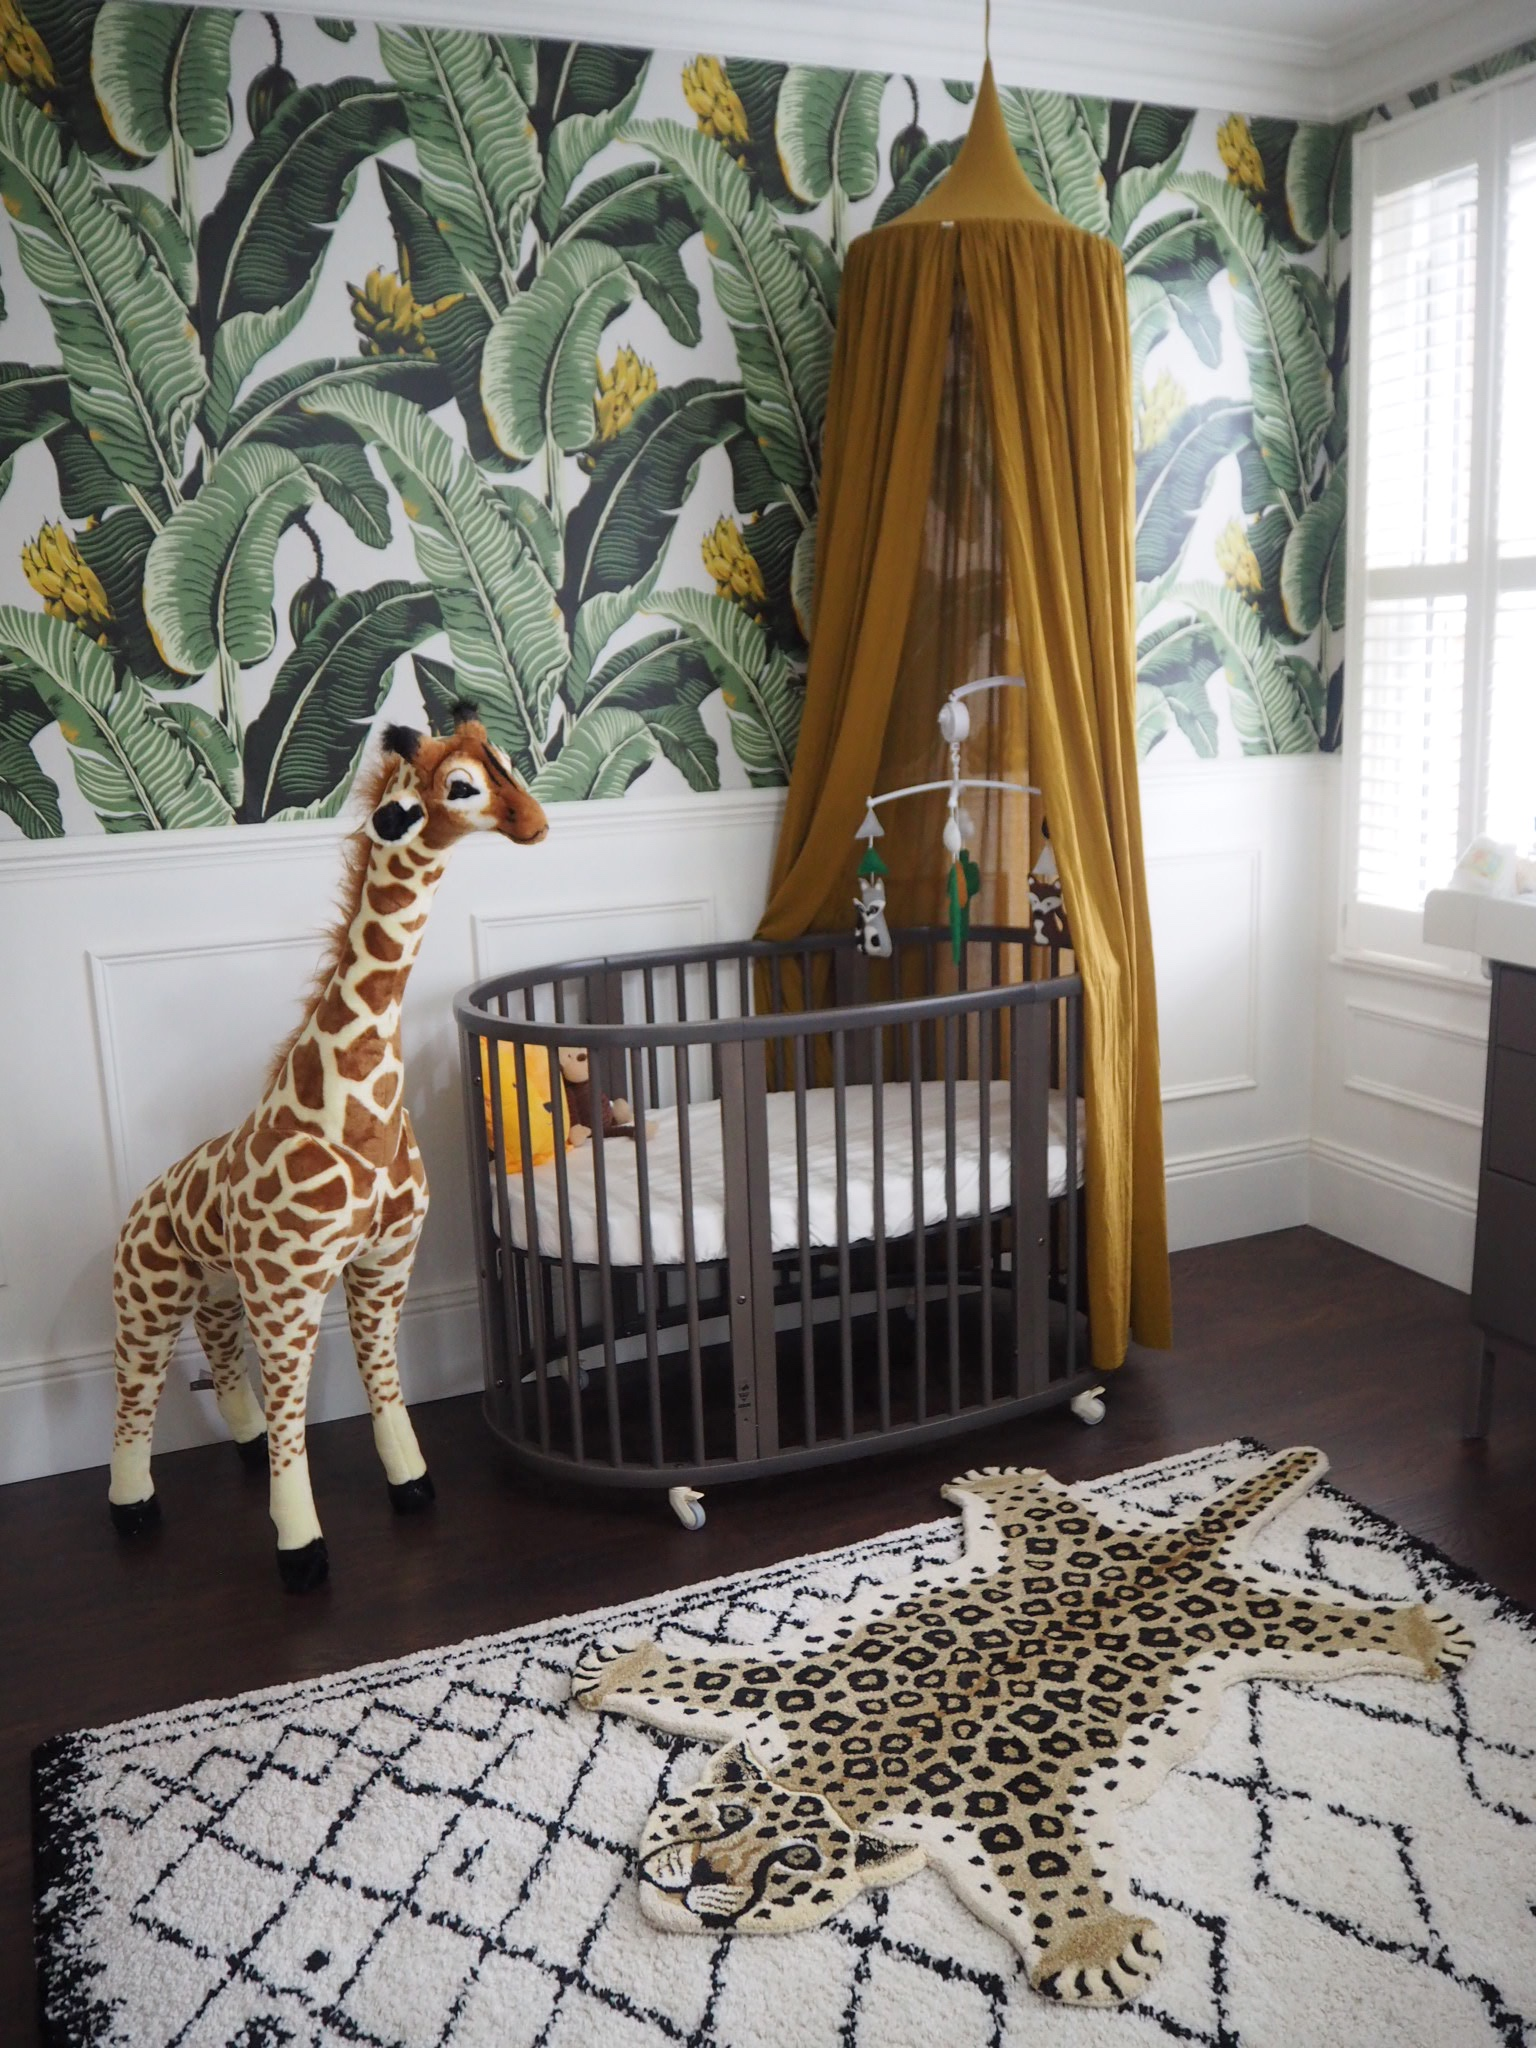 Otis' Jungle Nursery  copy.jpg